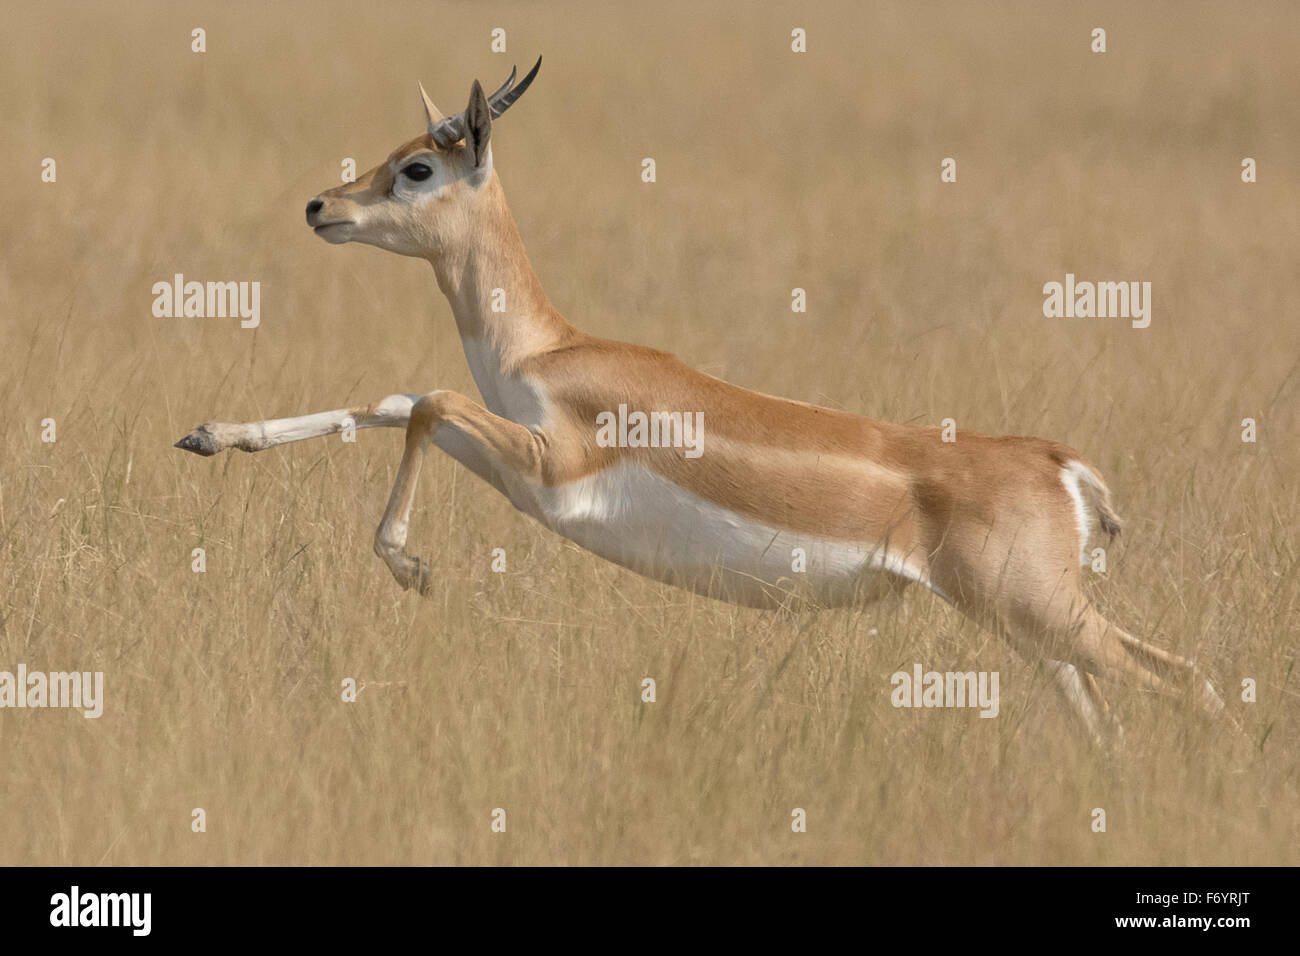 Blackbuck (Antilope cervicapra) leaping at velavadar national park, Gujarat, India - Stock Image